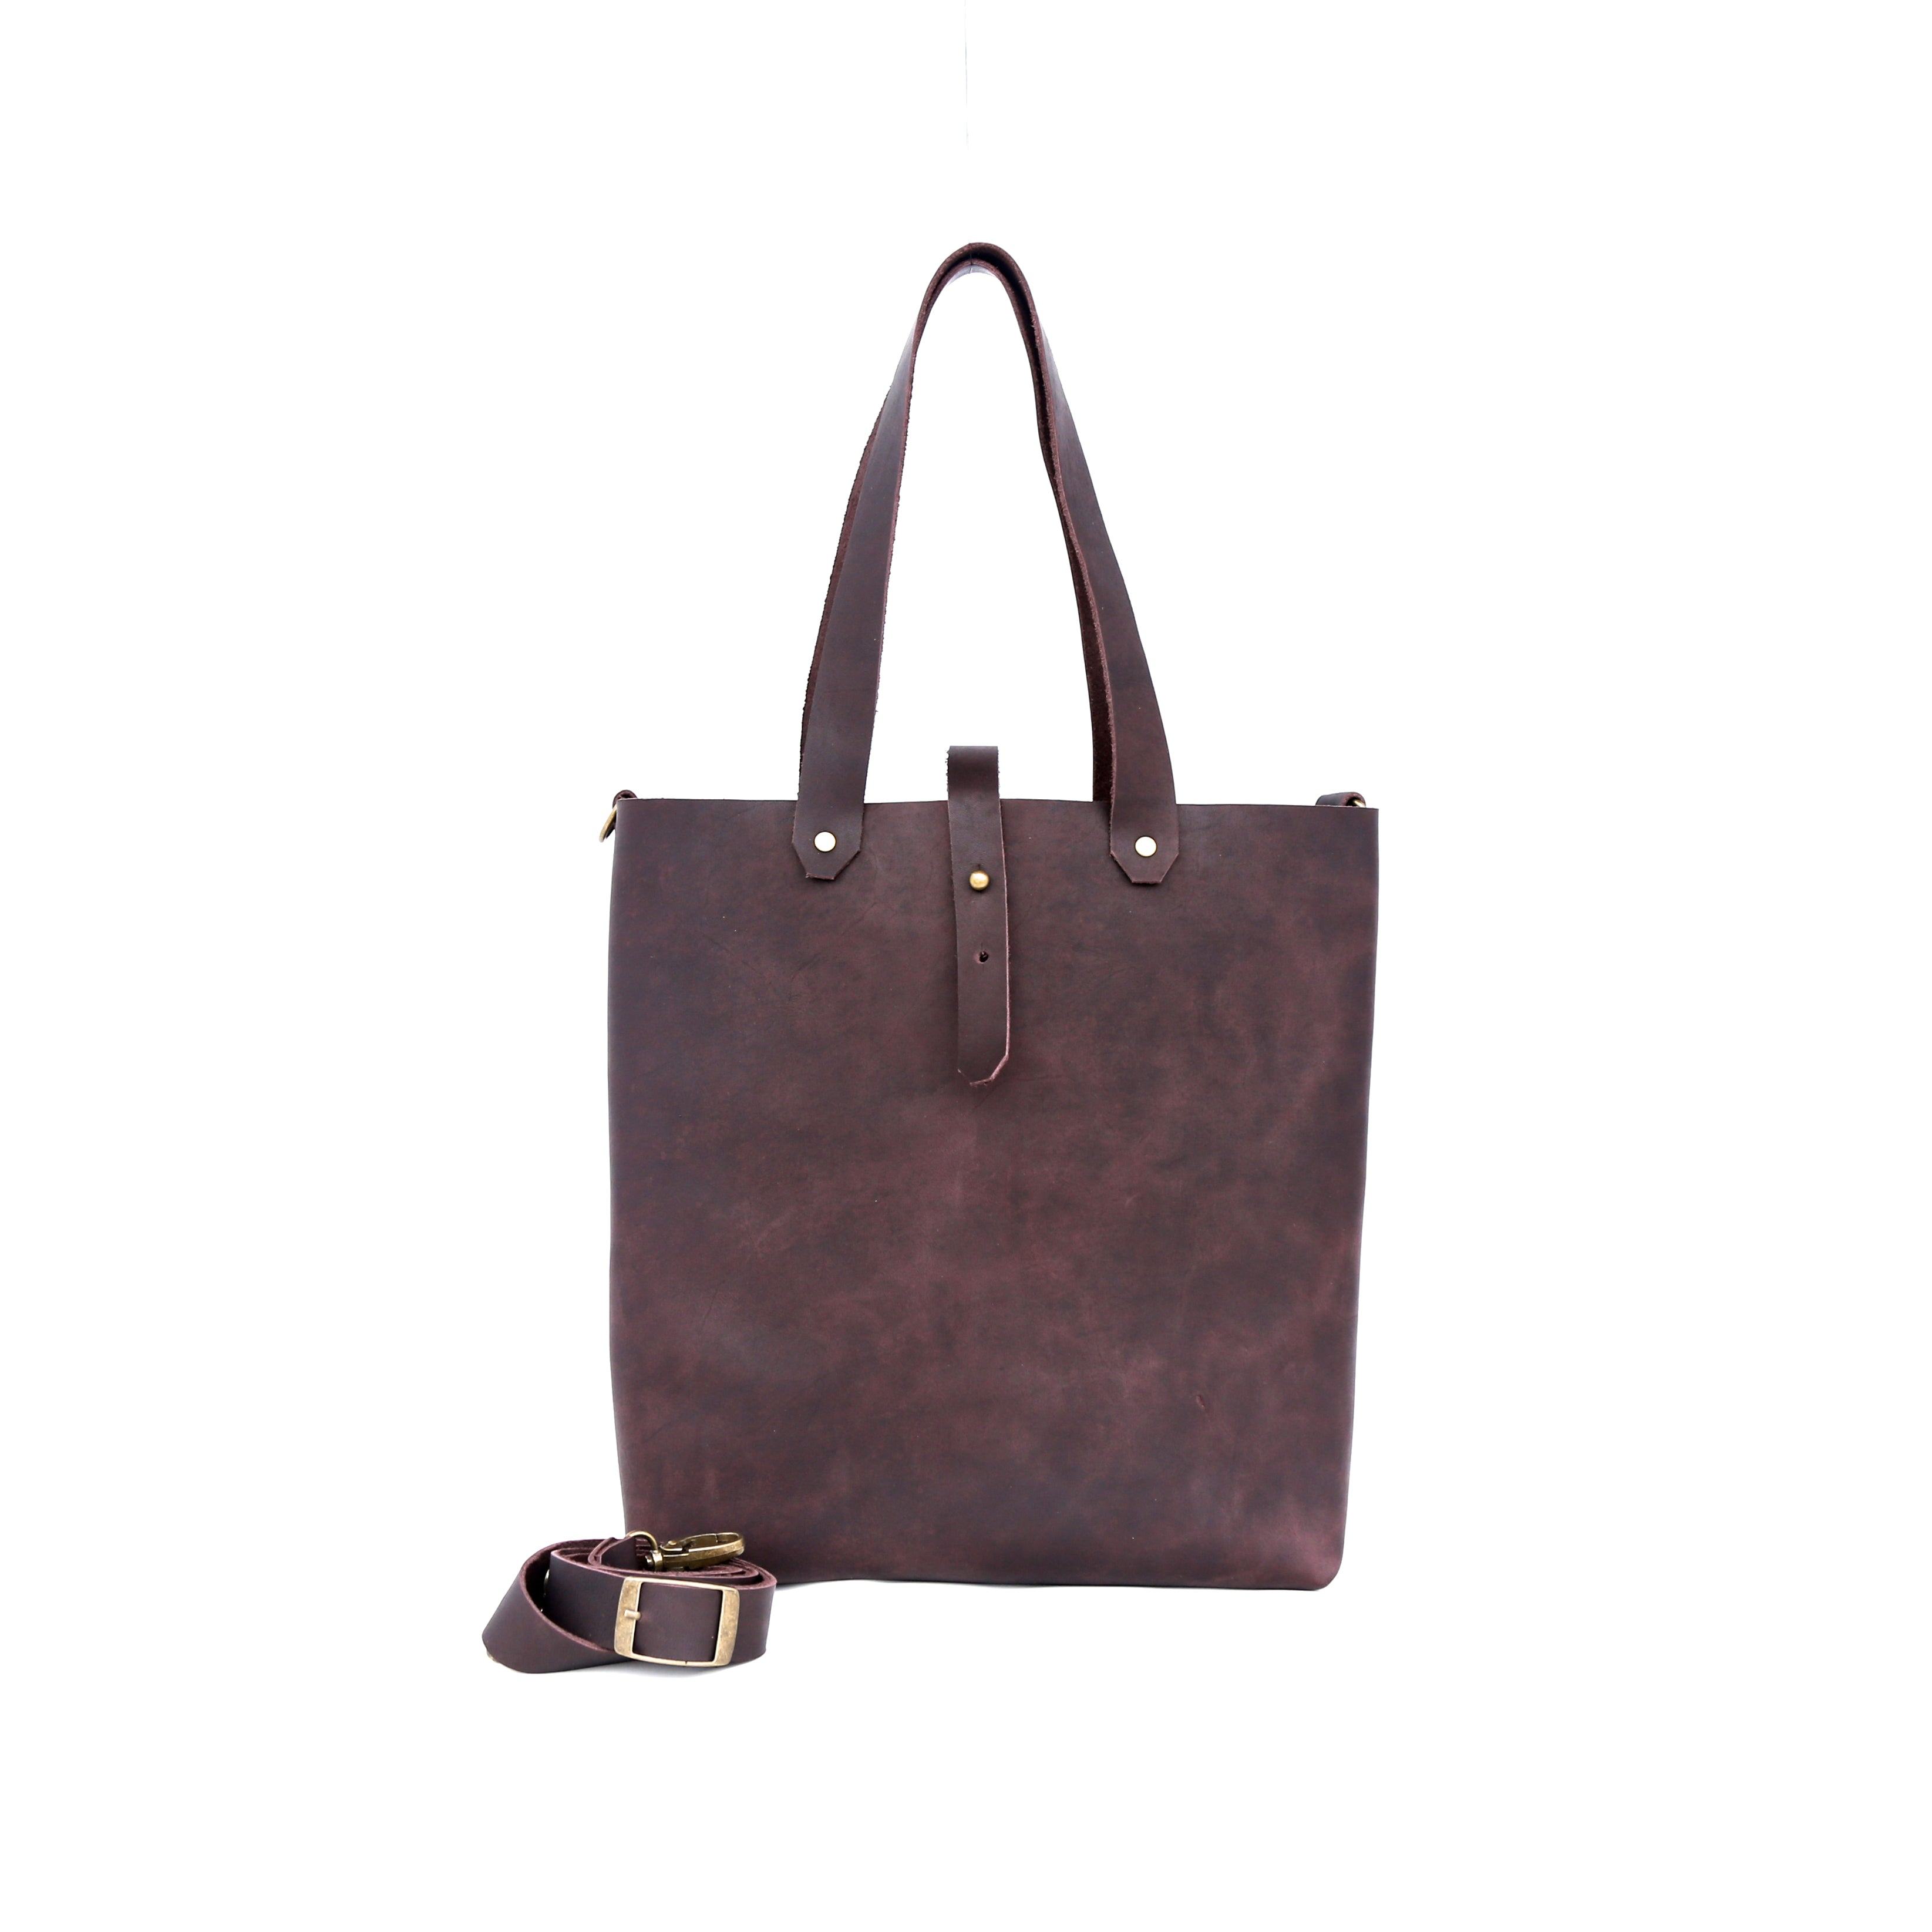 Shopper Tote in Plum Leather - handcrafted by Market Canvas Leather in Tofino, BC, Canada